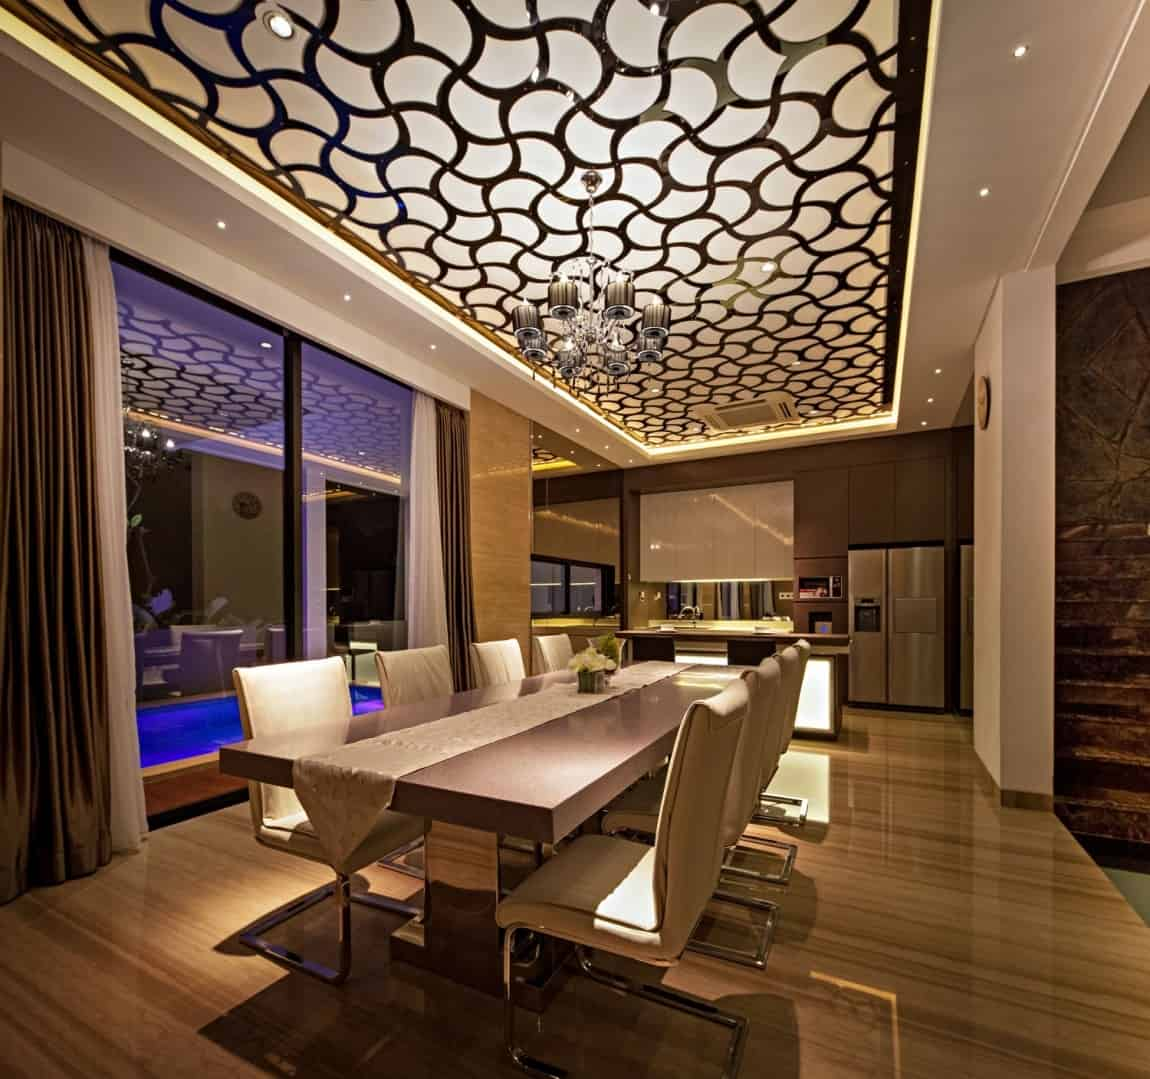 Ultra Cool Fun Creative Interior Design: House With Creative Ceilings And Glass Floors